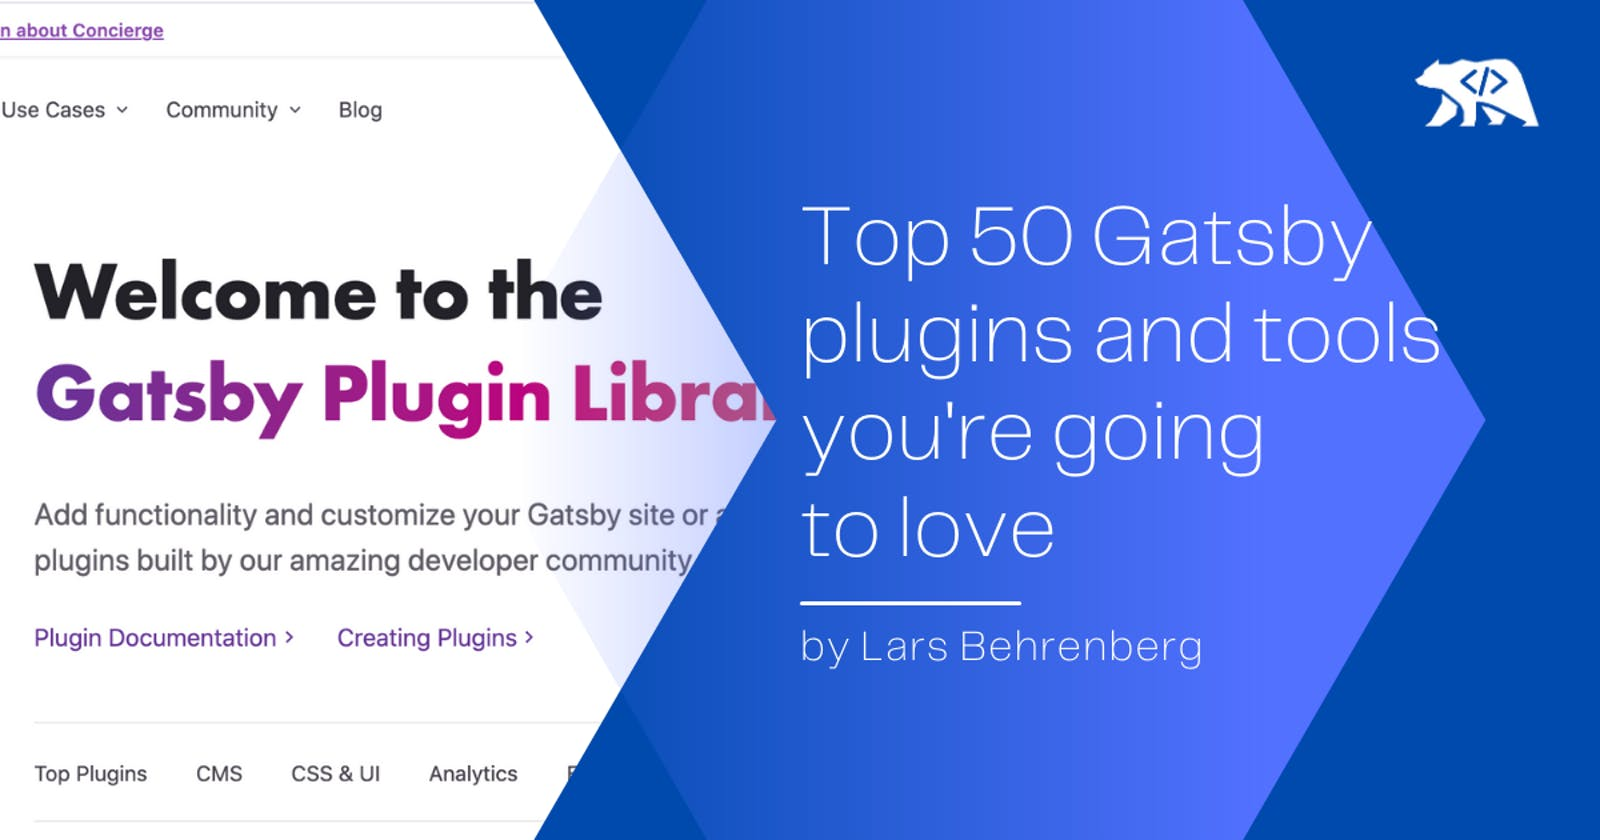 Top 50 Gatsby plugins you're going to love 🔥👨💻